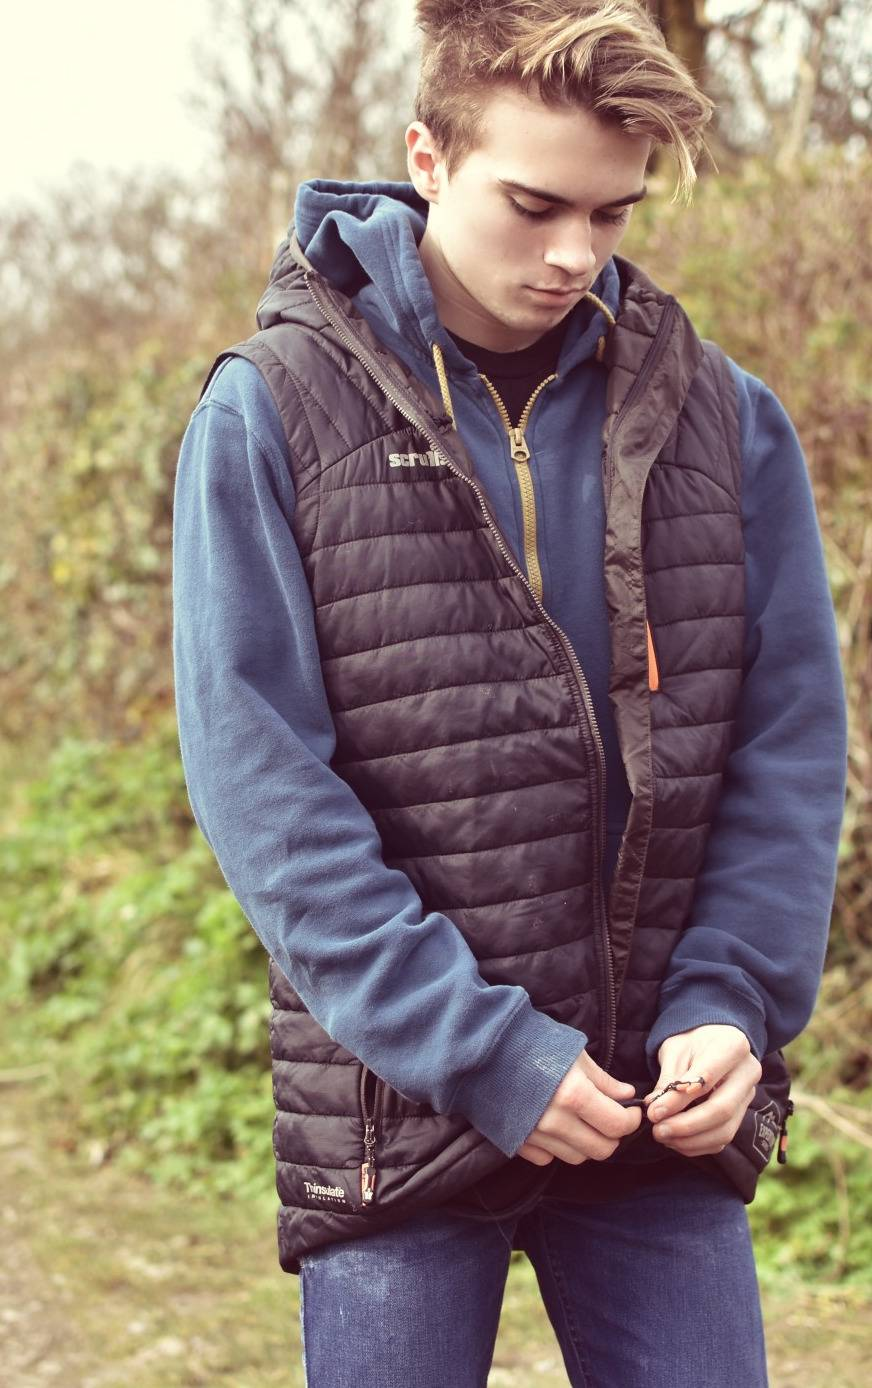 A review of a Scruffs Expedition Thermo gilet. My husband tells me this is the best one he's owned, as he works outside he needs something which doesn't restrict his movements and this one is light and still warm with cleverly designed features